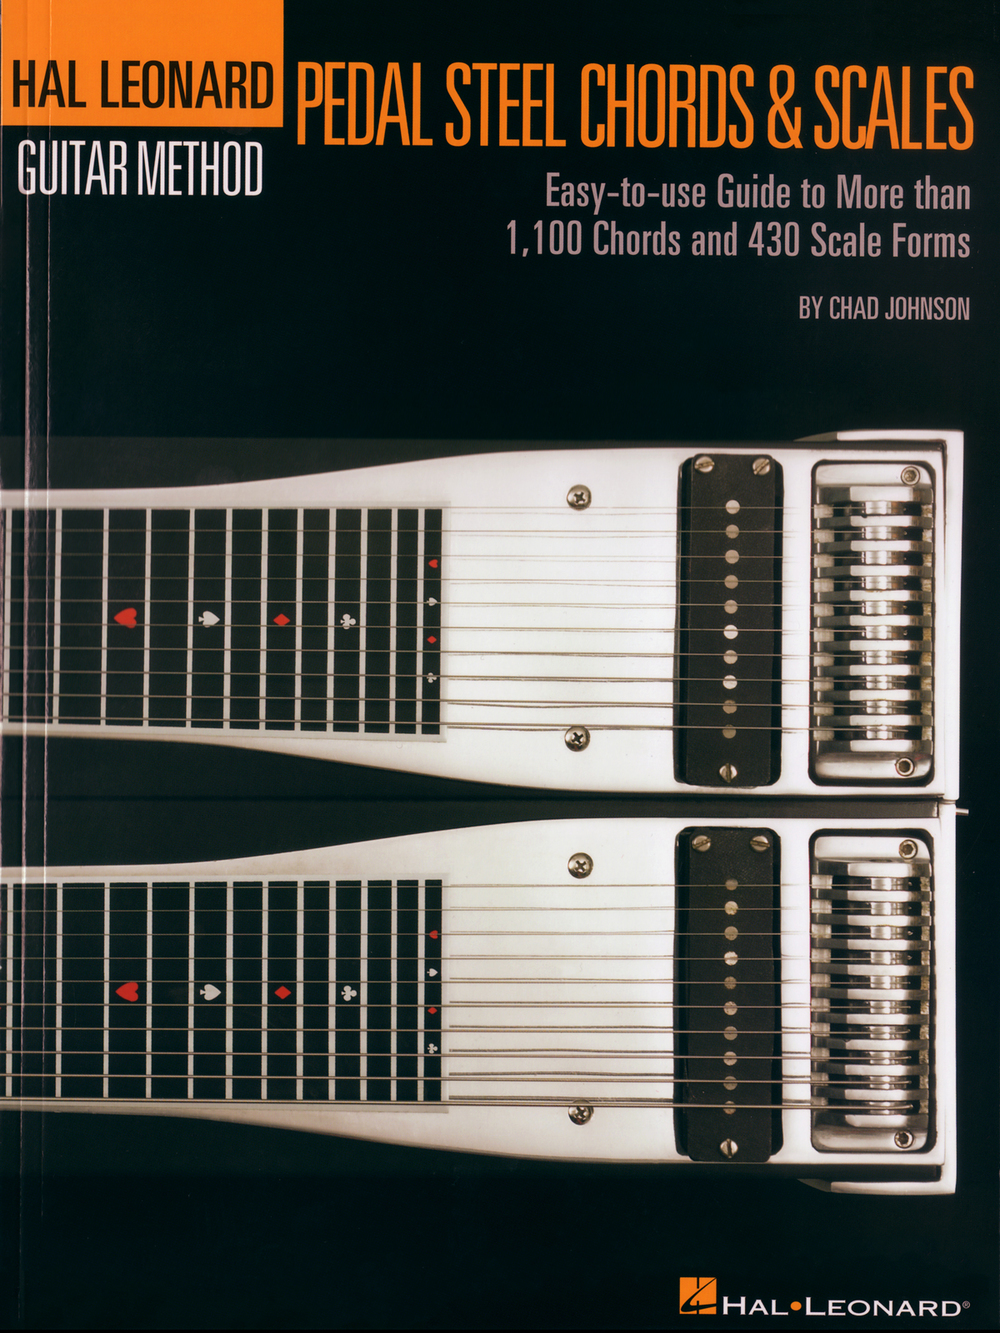 Pedal Steel Guitar Chords & Scales